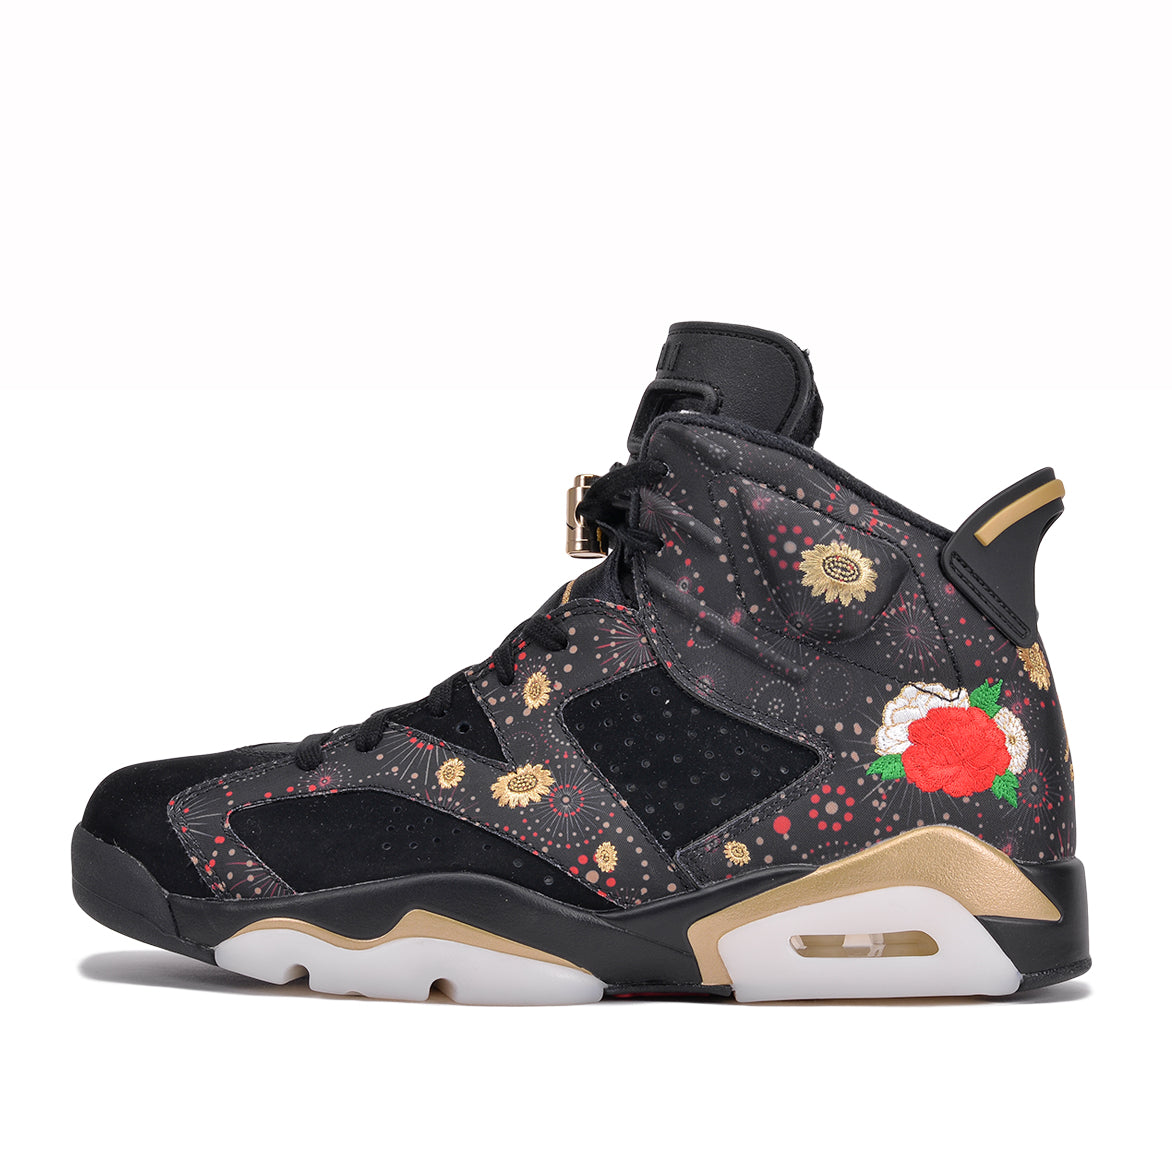 buy online 5bea8 e4cee AIR JORDAN 6 RETRO